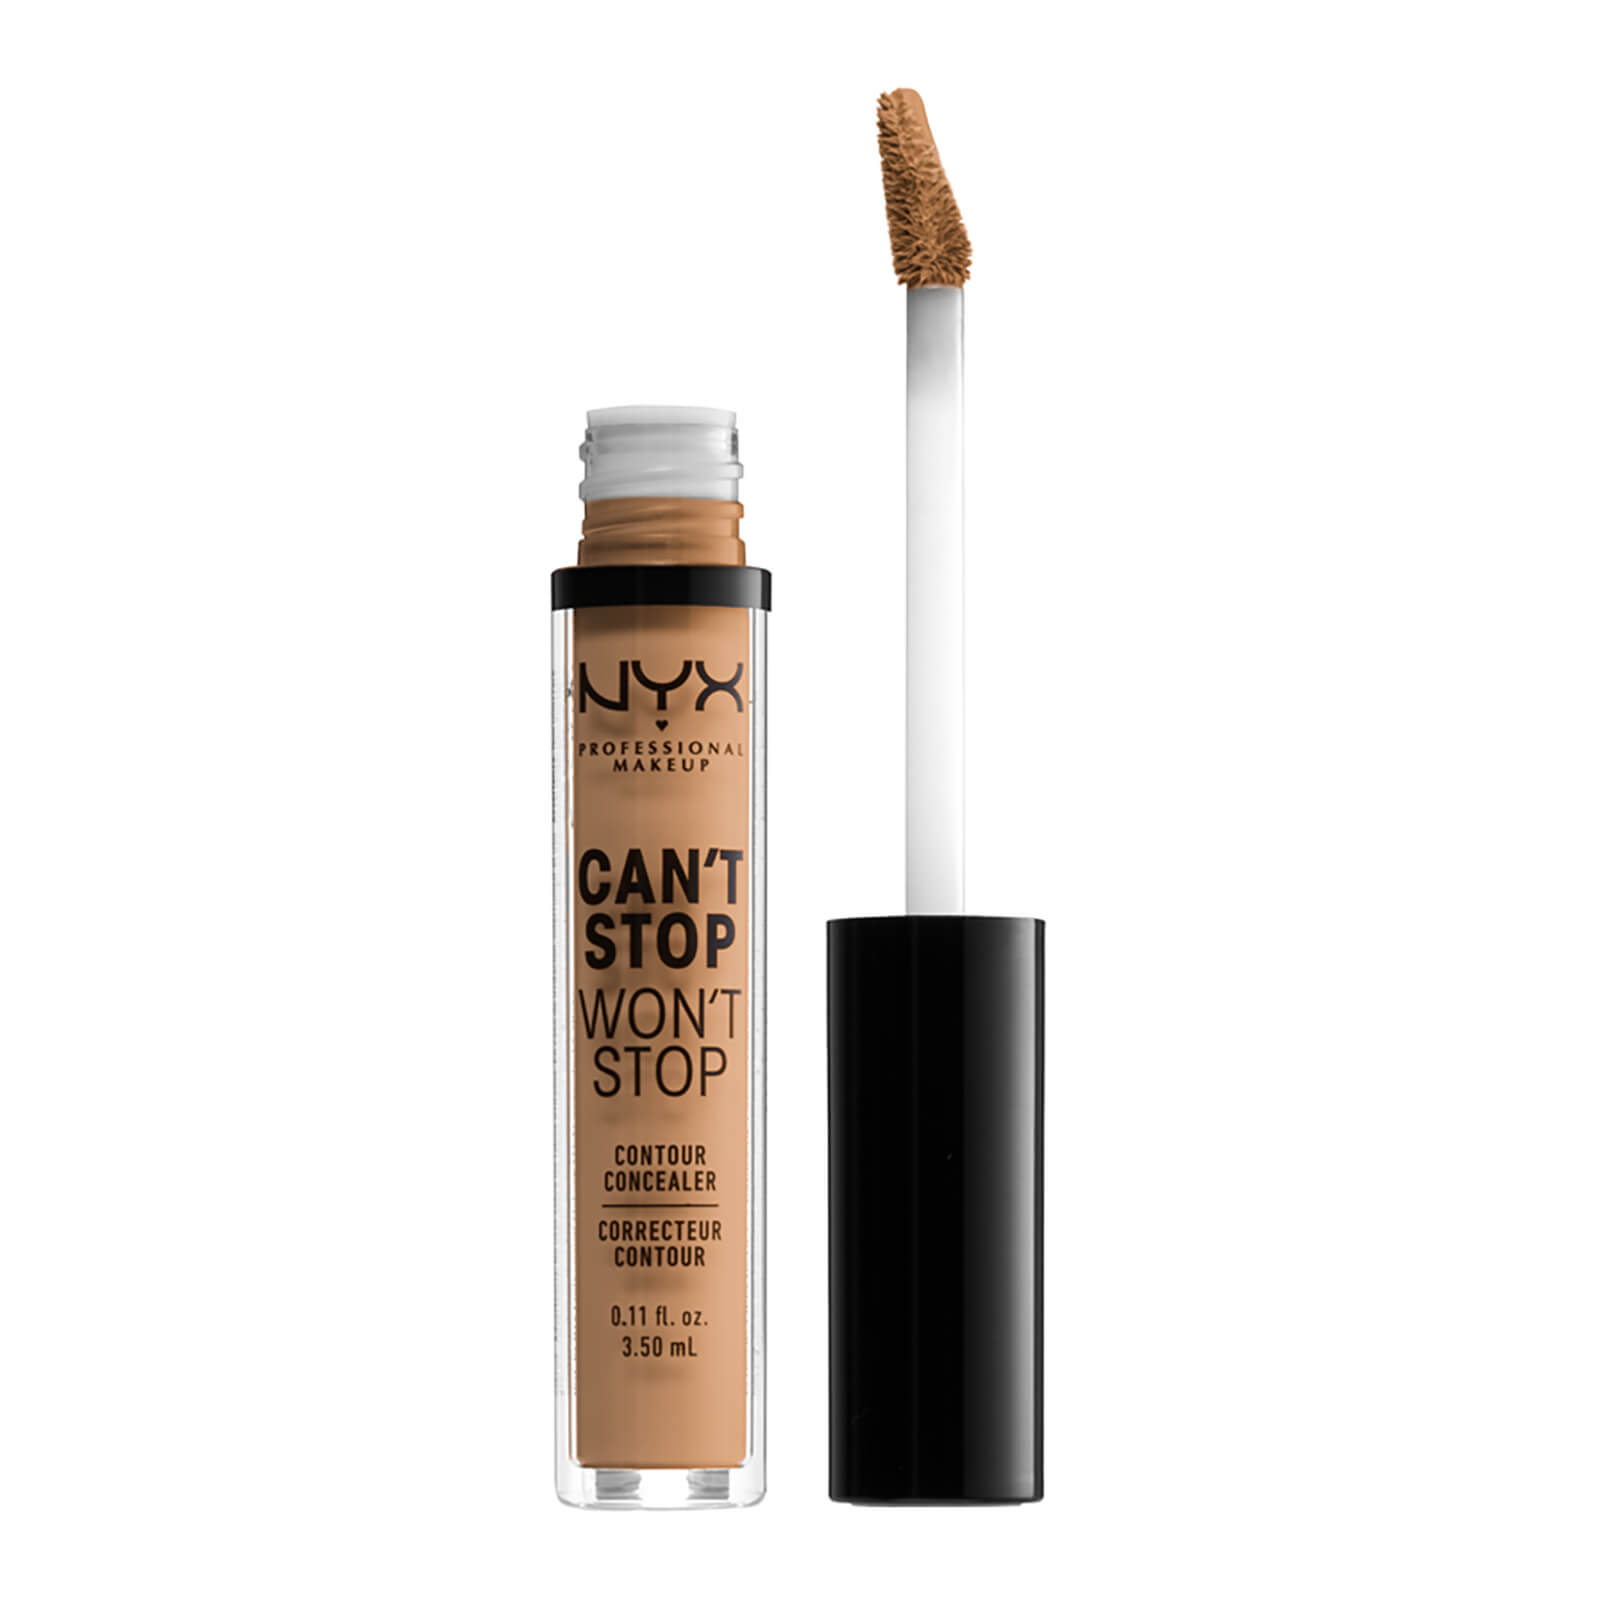 NYX Professional Makeup Can't Stop Won't Stop Contour Concealer (Various Shades) - Neutral Buff